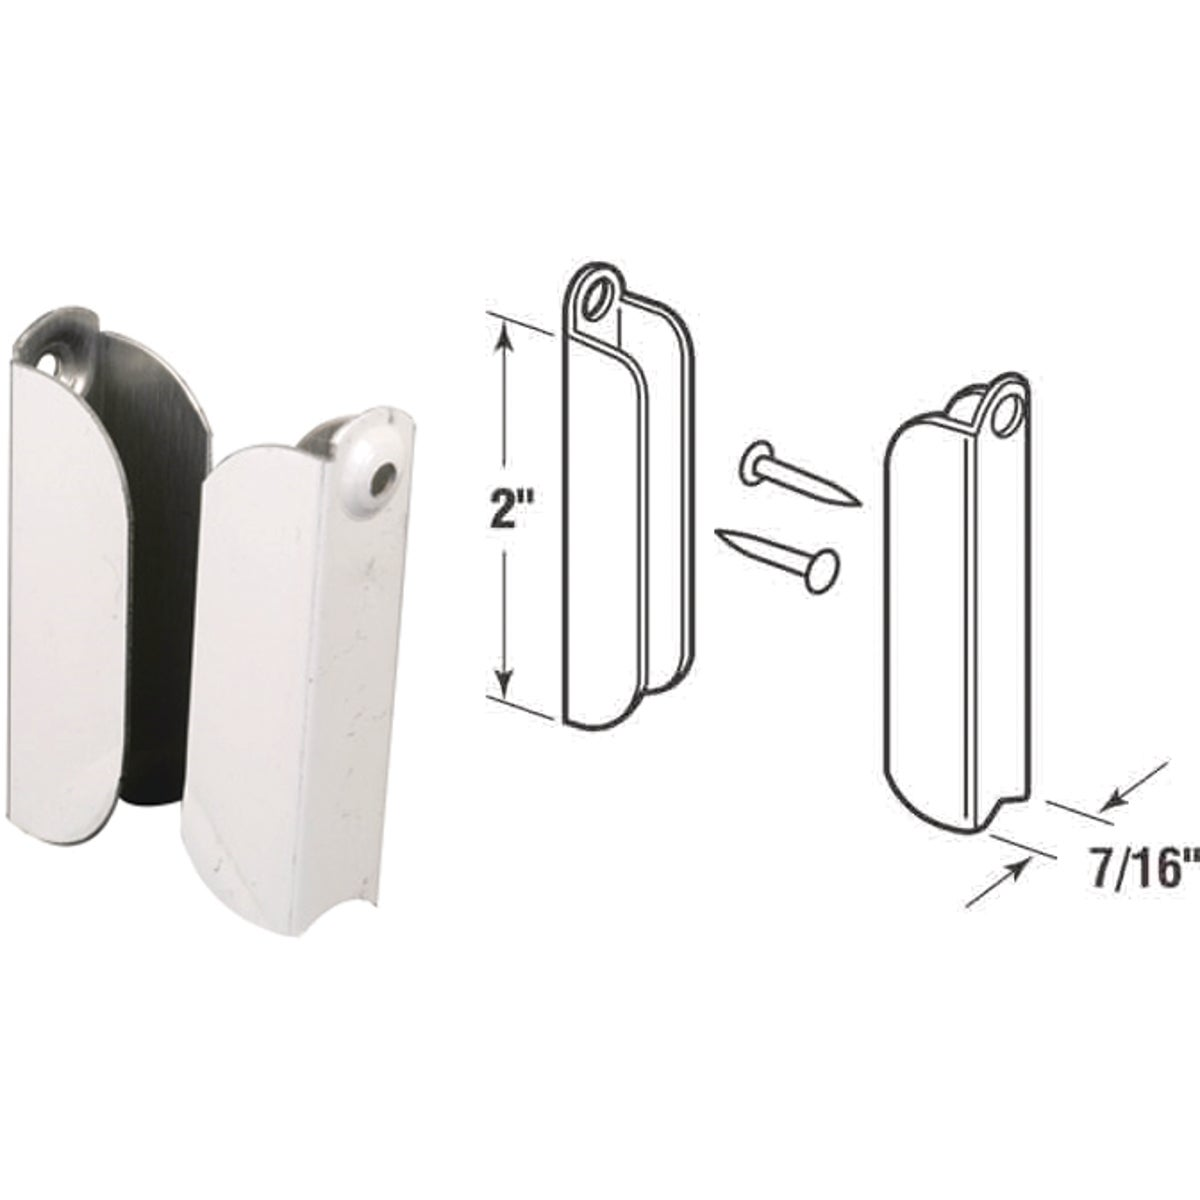 "7/16""WHT ALUM TOP HANGER - PL15565 by Prime Line Products"